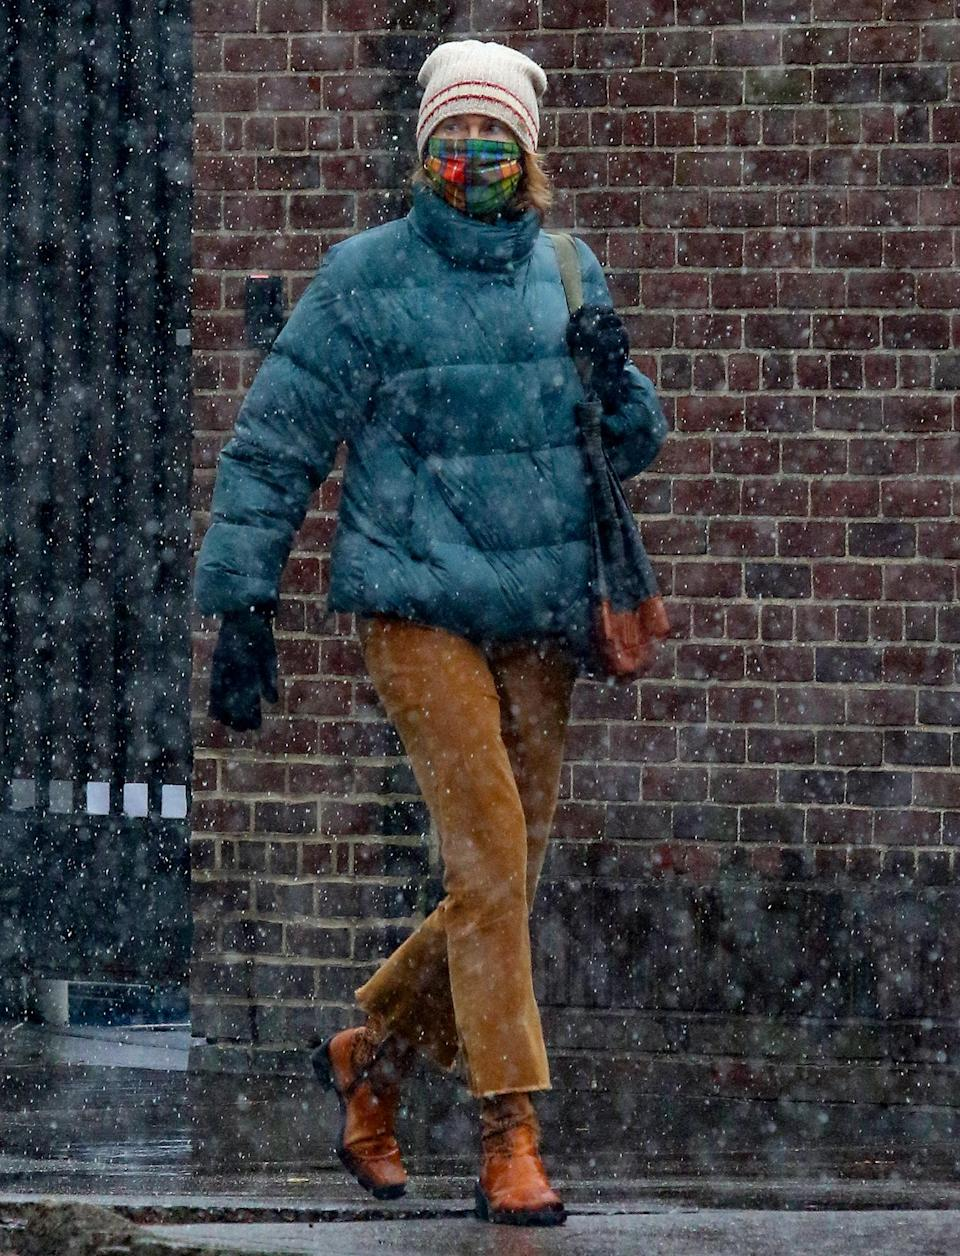 <p>Naomi Watts braves the first snowfall in N.Y.C. on Wednesday, wearing a teal puffer coat, a beanie and brown boots.</p>